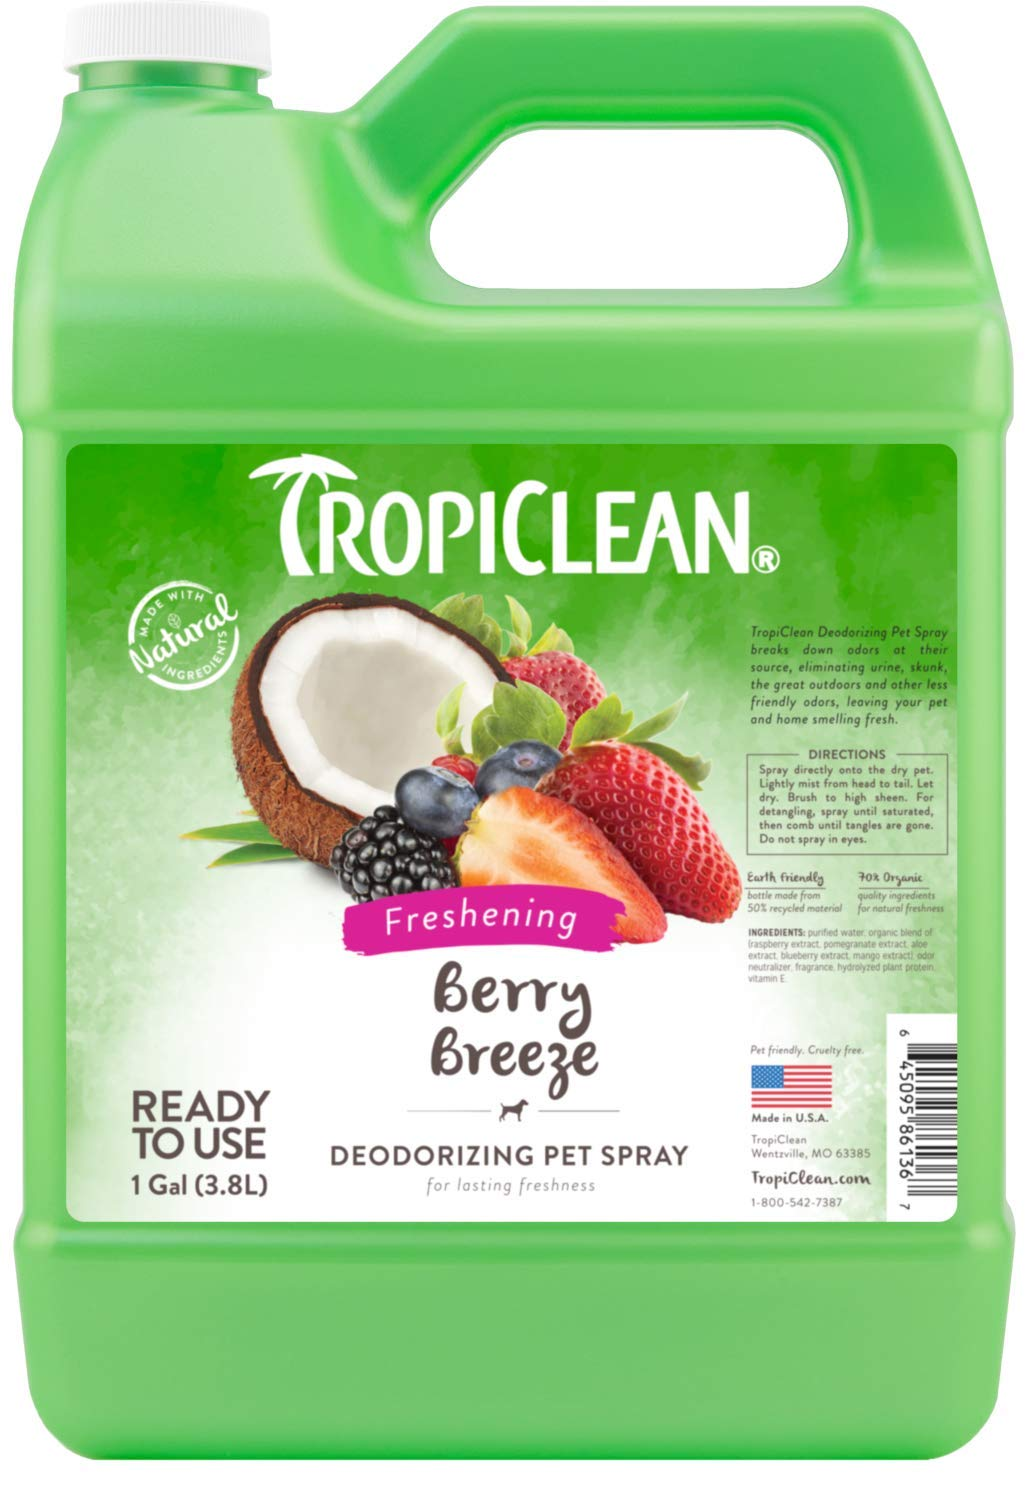 TropiClean Berry Breeze Deodorizing Spray for Pets, 1 gal, Made in USA